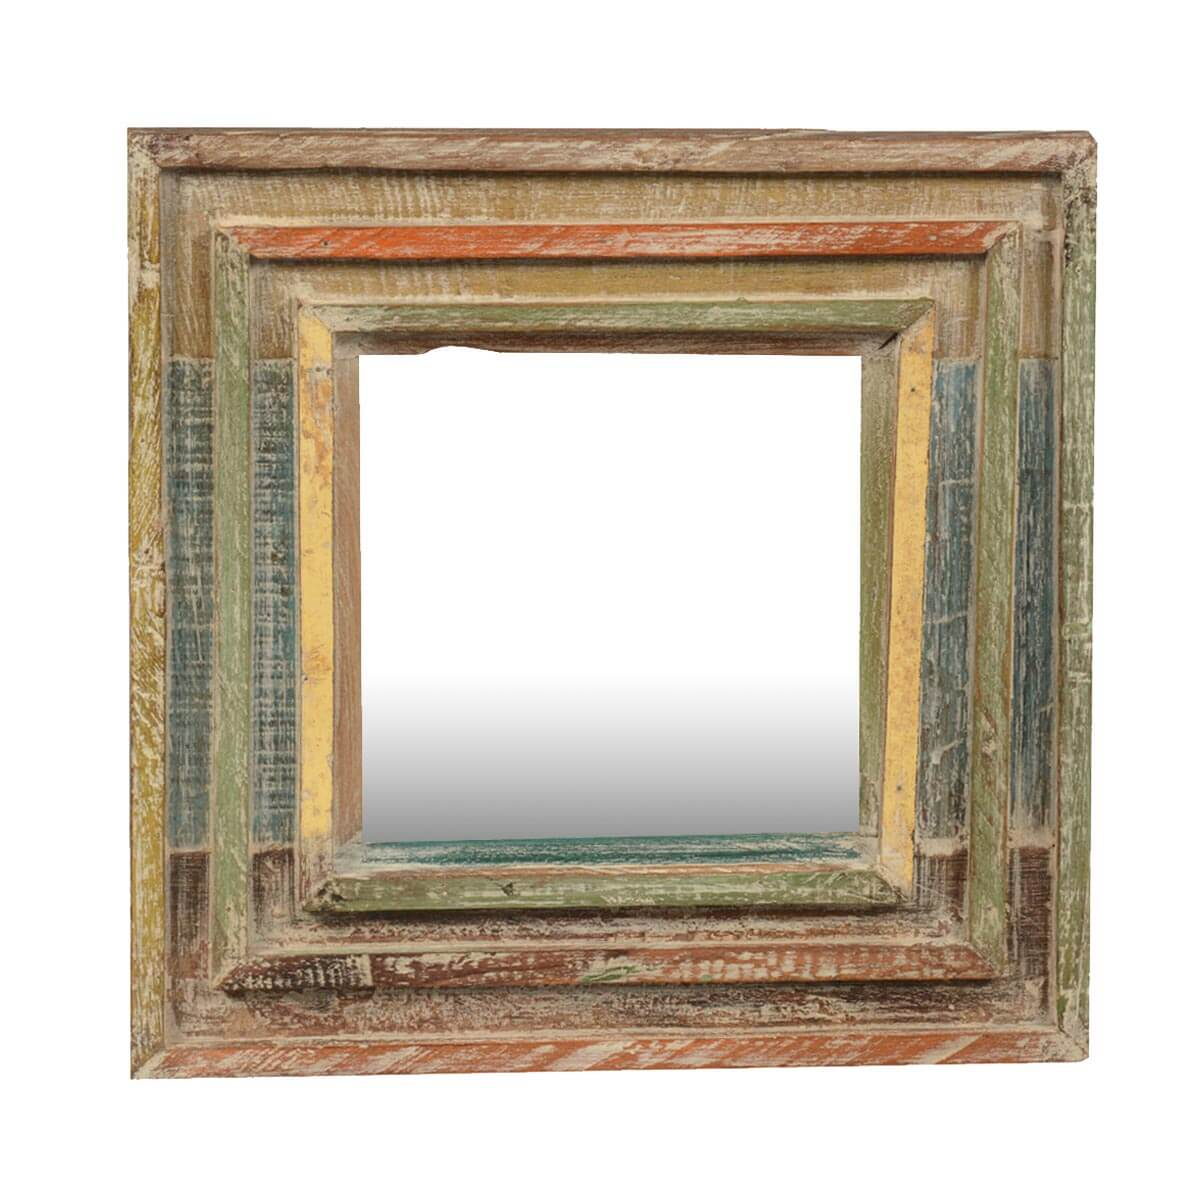 Rainbow rustic reclaimed wood 12 5 square framed wall mirror for Rustic mirror